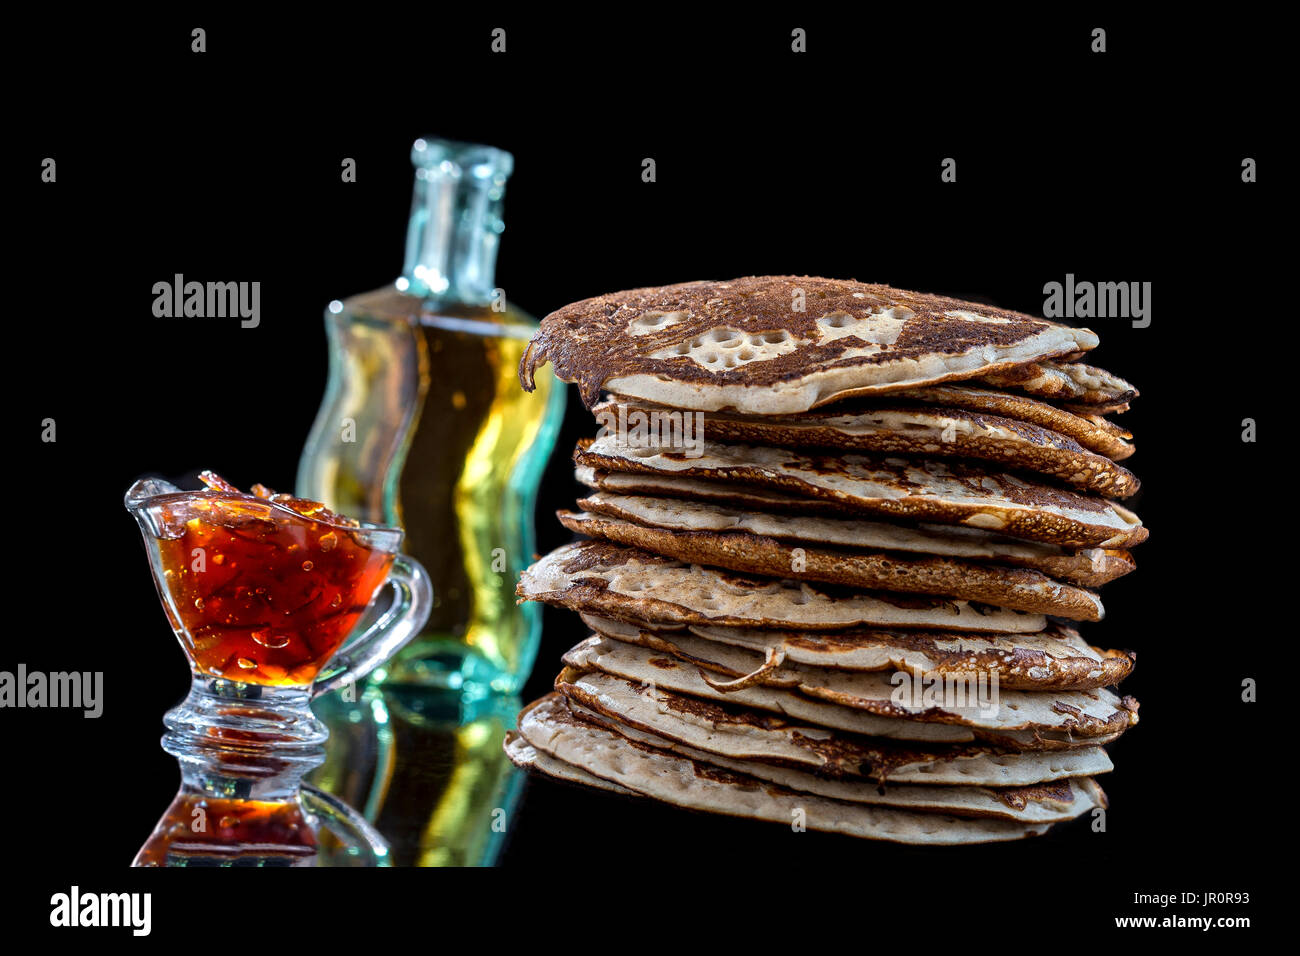 Glutten-free pancakes with jam and Maple syrup, bio healthy ingredients, on black - Stock Image